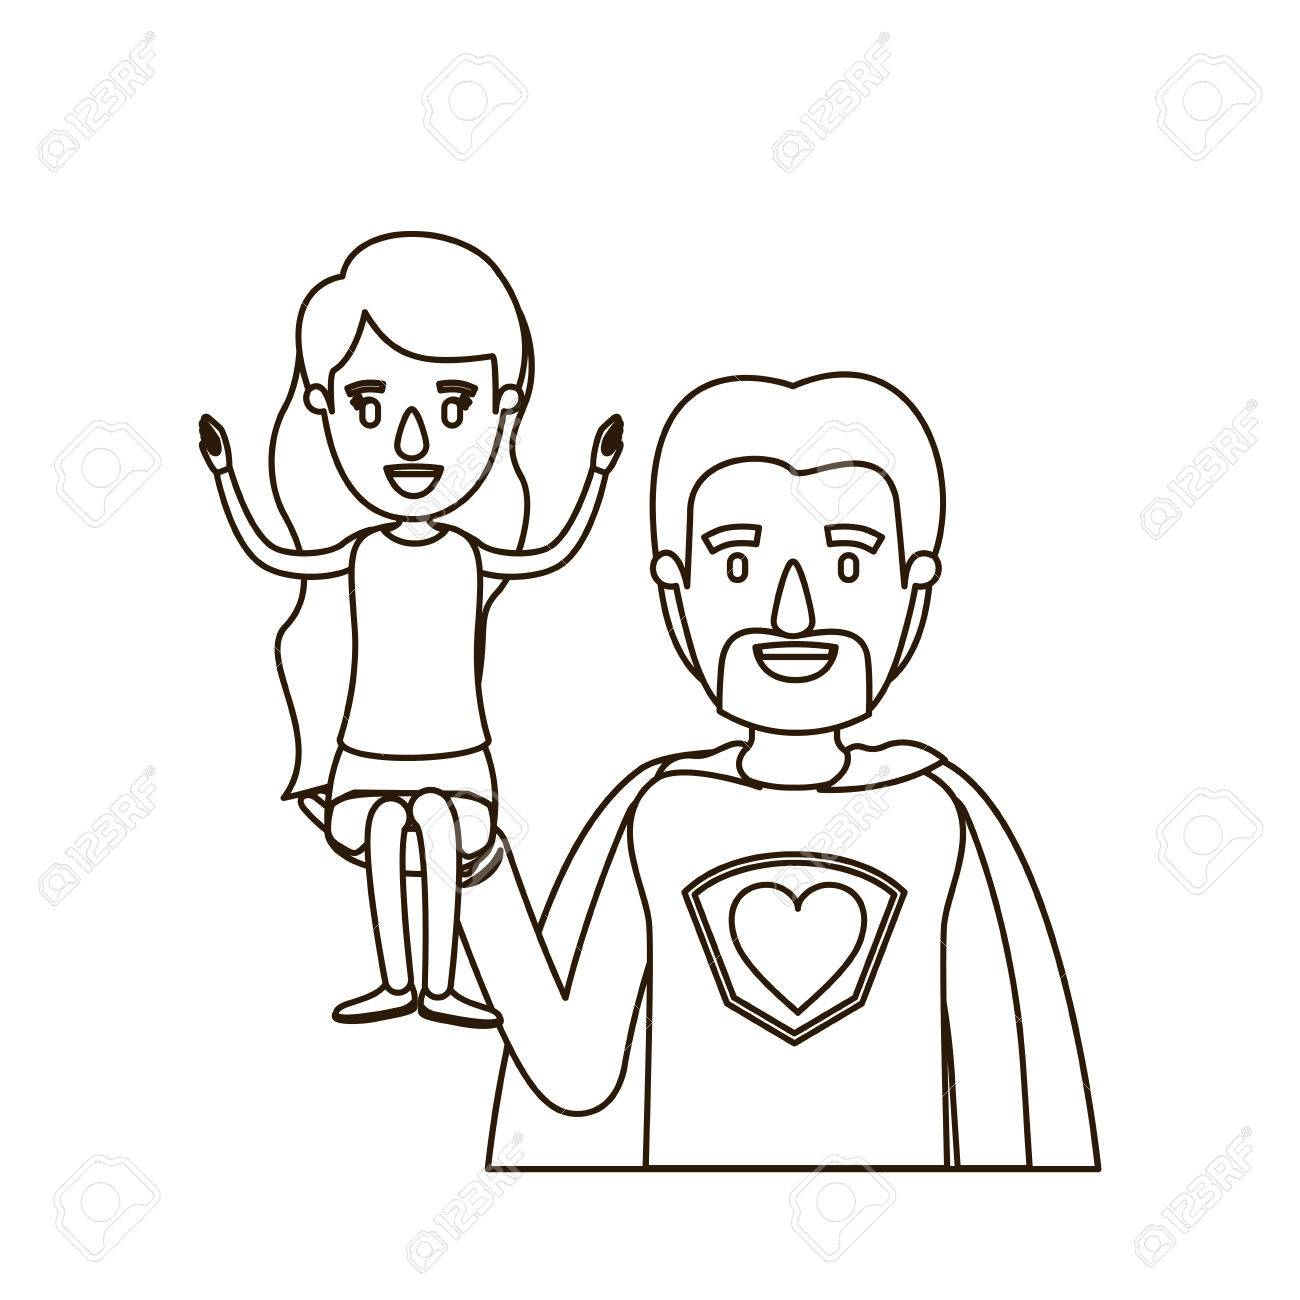 1300x1300 Sketch Contour Caricature Half Body Super Dad Hero With Girl